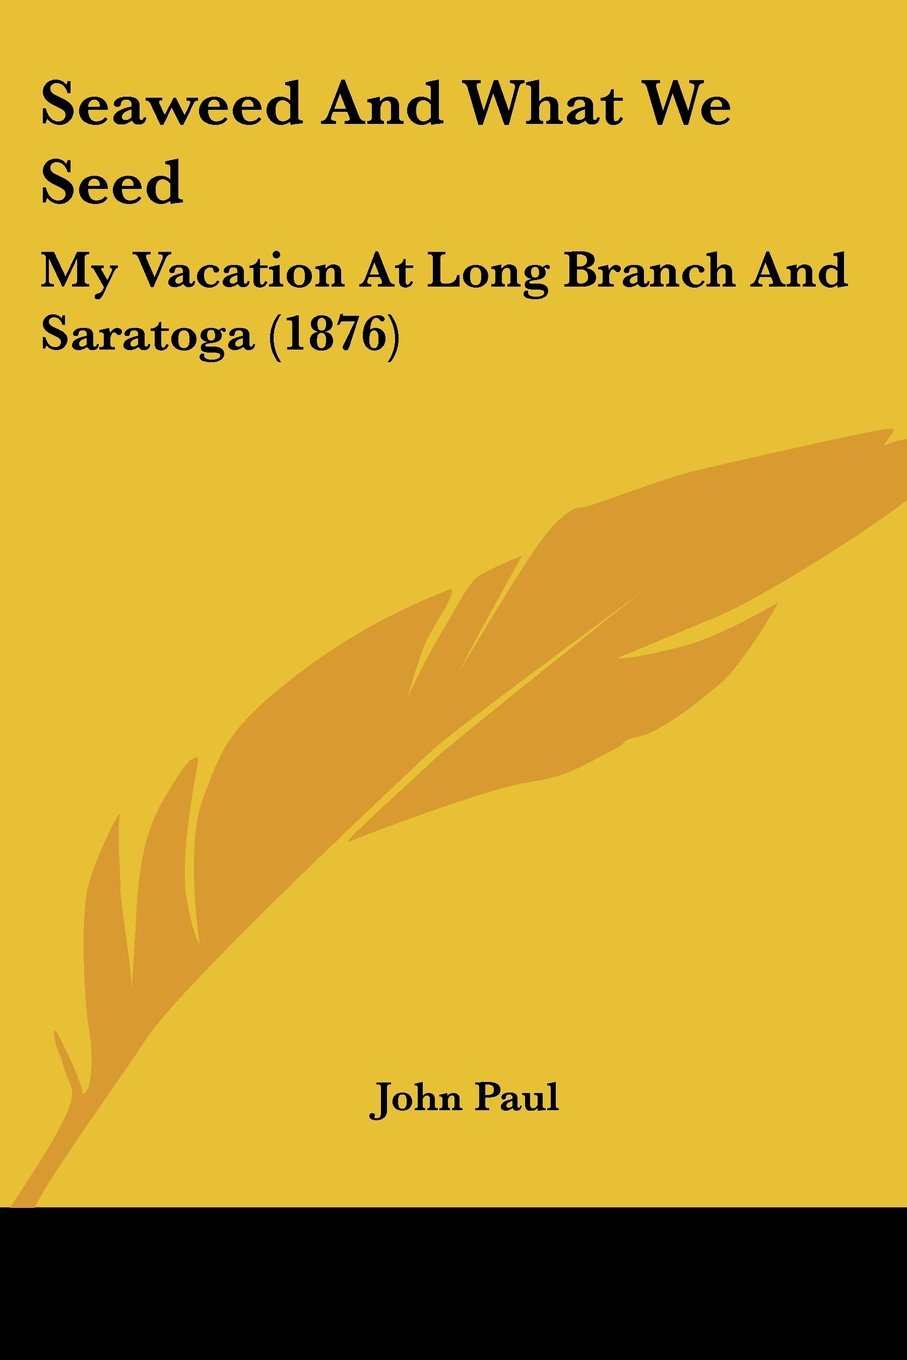 Download Seaweed And What We Seed: My Vacation At Long Branch And Saratoga (1876) PDF